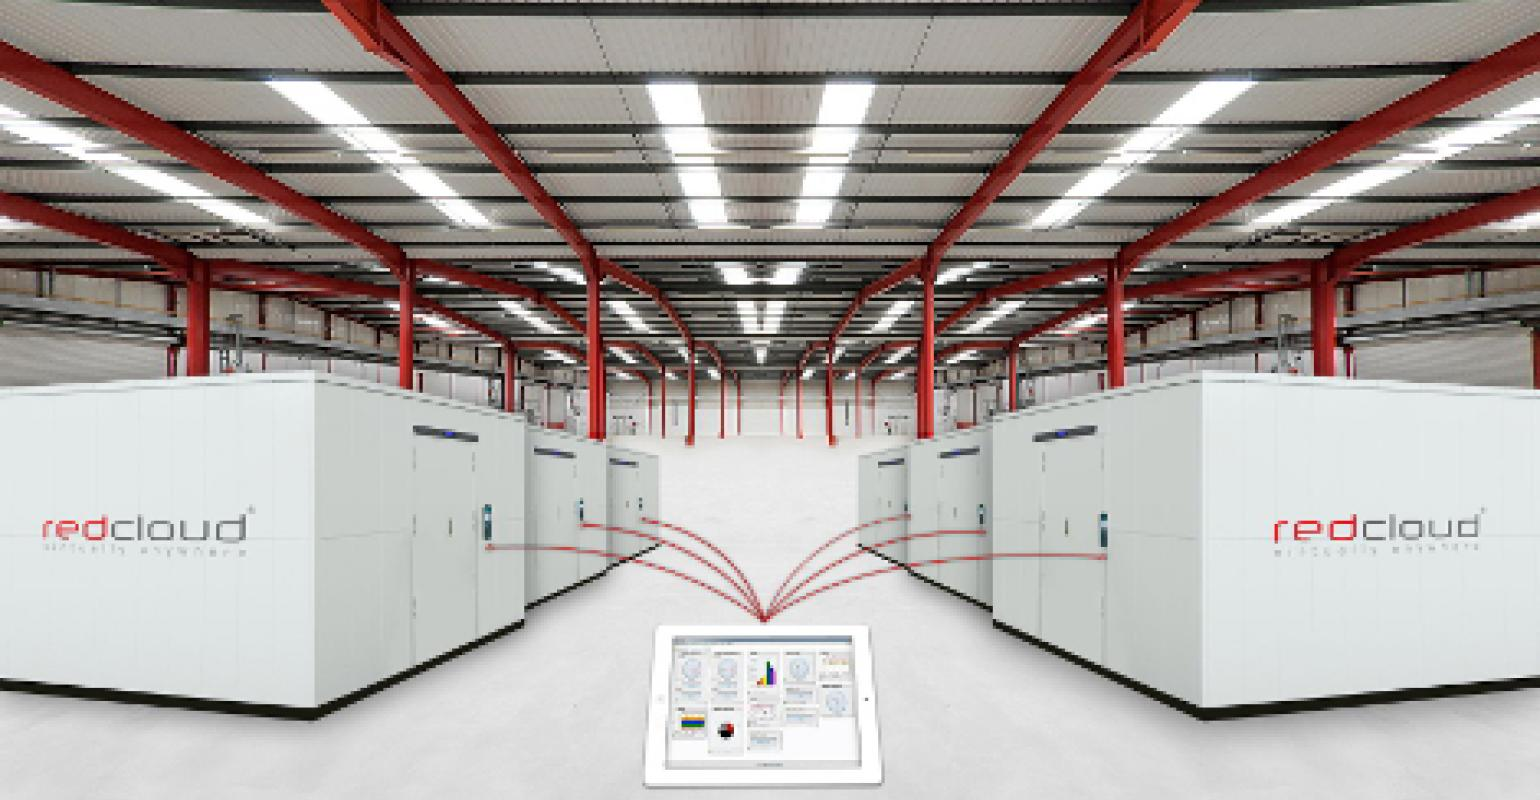 Red Cloud To Use Cannon S Modular Data Centers In Australia